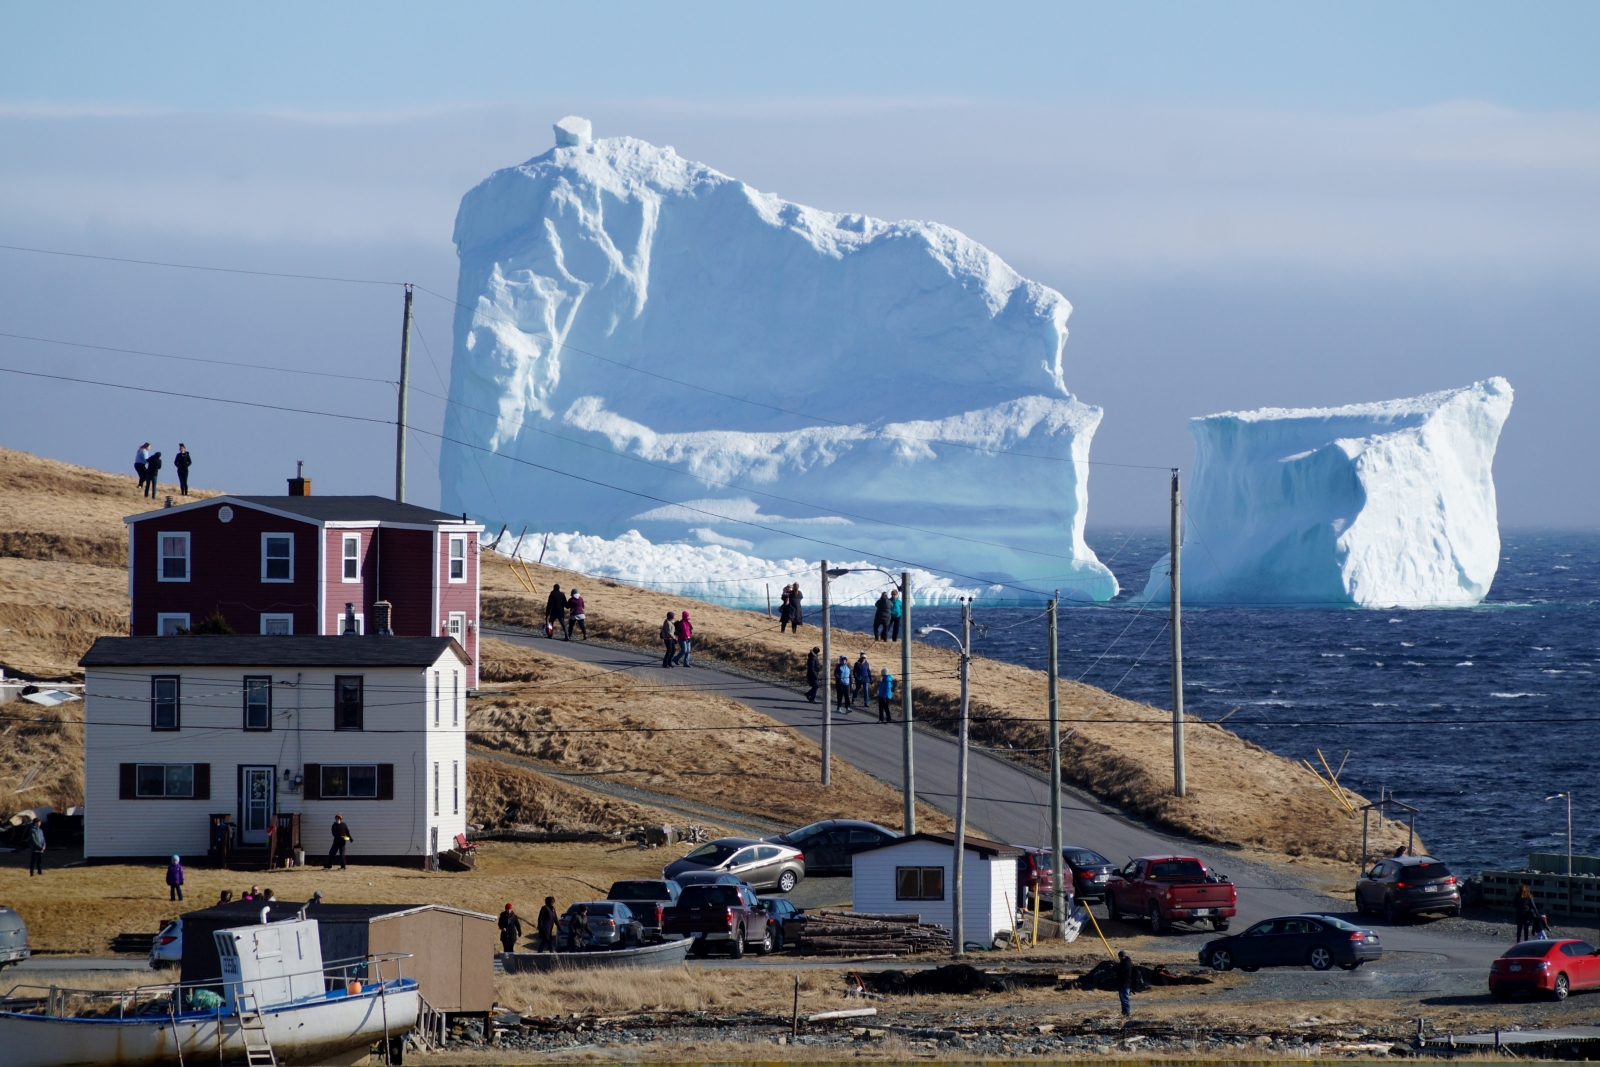 Cold snap: massive iceberg just off coast draws Canadians eager for close-up